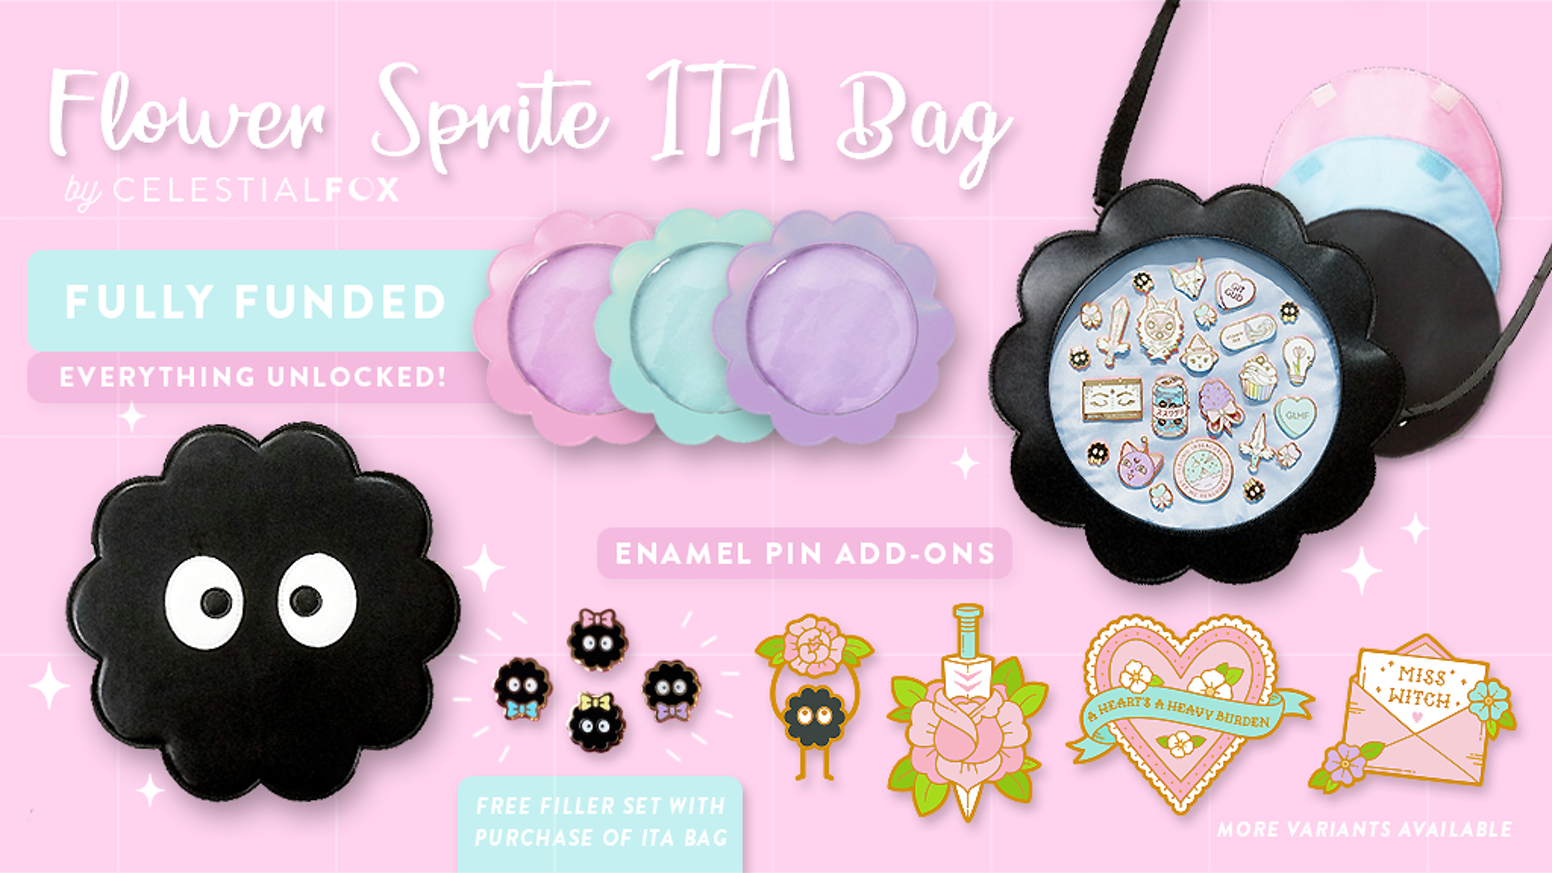 Crossbody faux leather ITA bag to display your pins! ♡ Kickstarter special pricing and freebies ♡